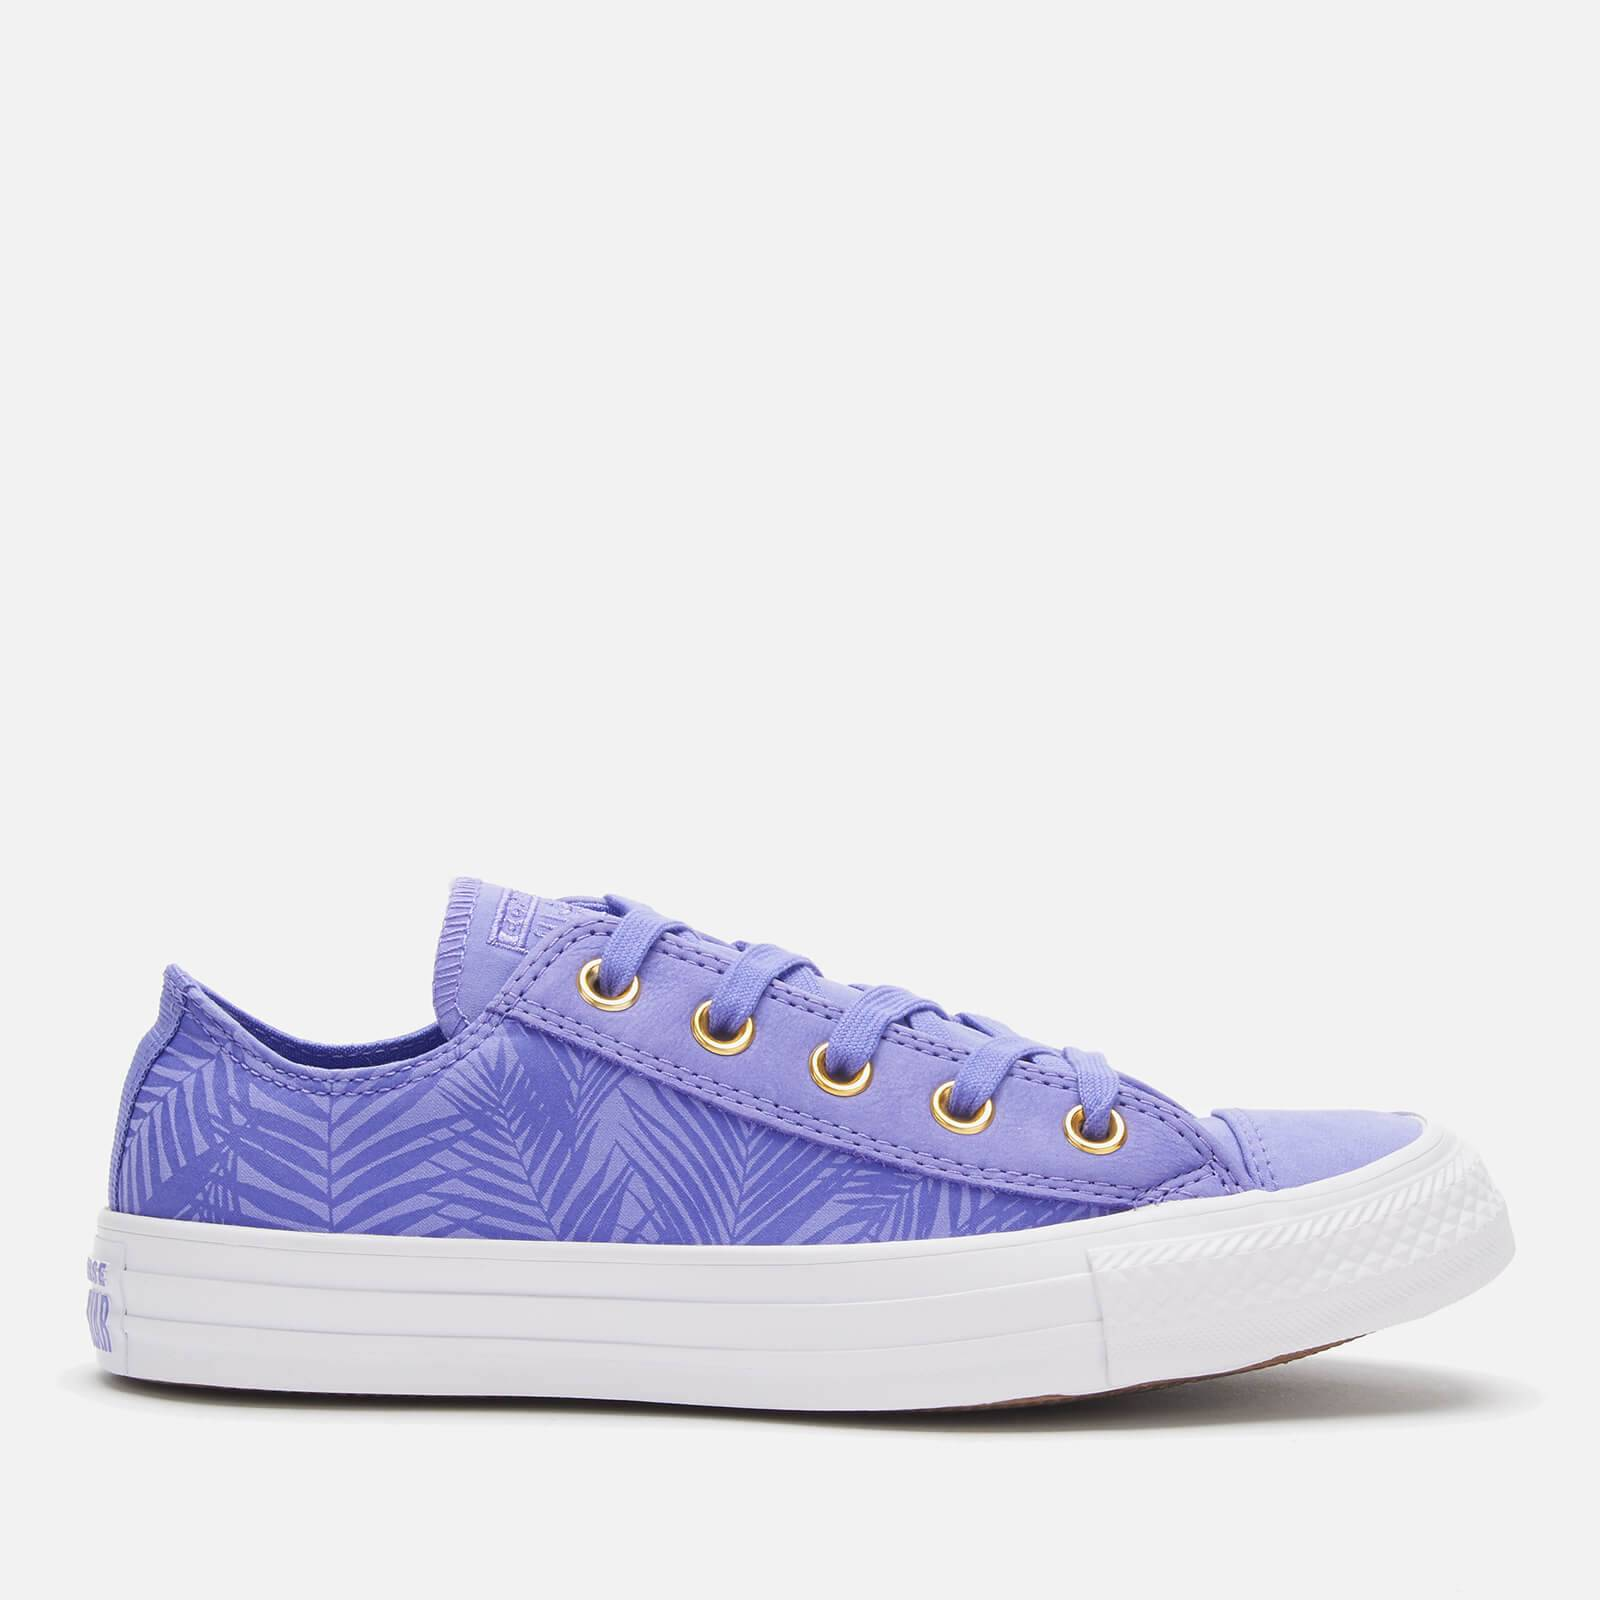 Converse Women's Chuck Taylor All Star Ox Trainers - Wild Lilac/Antique Brass/White - UK 3 - Purple